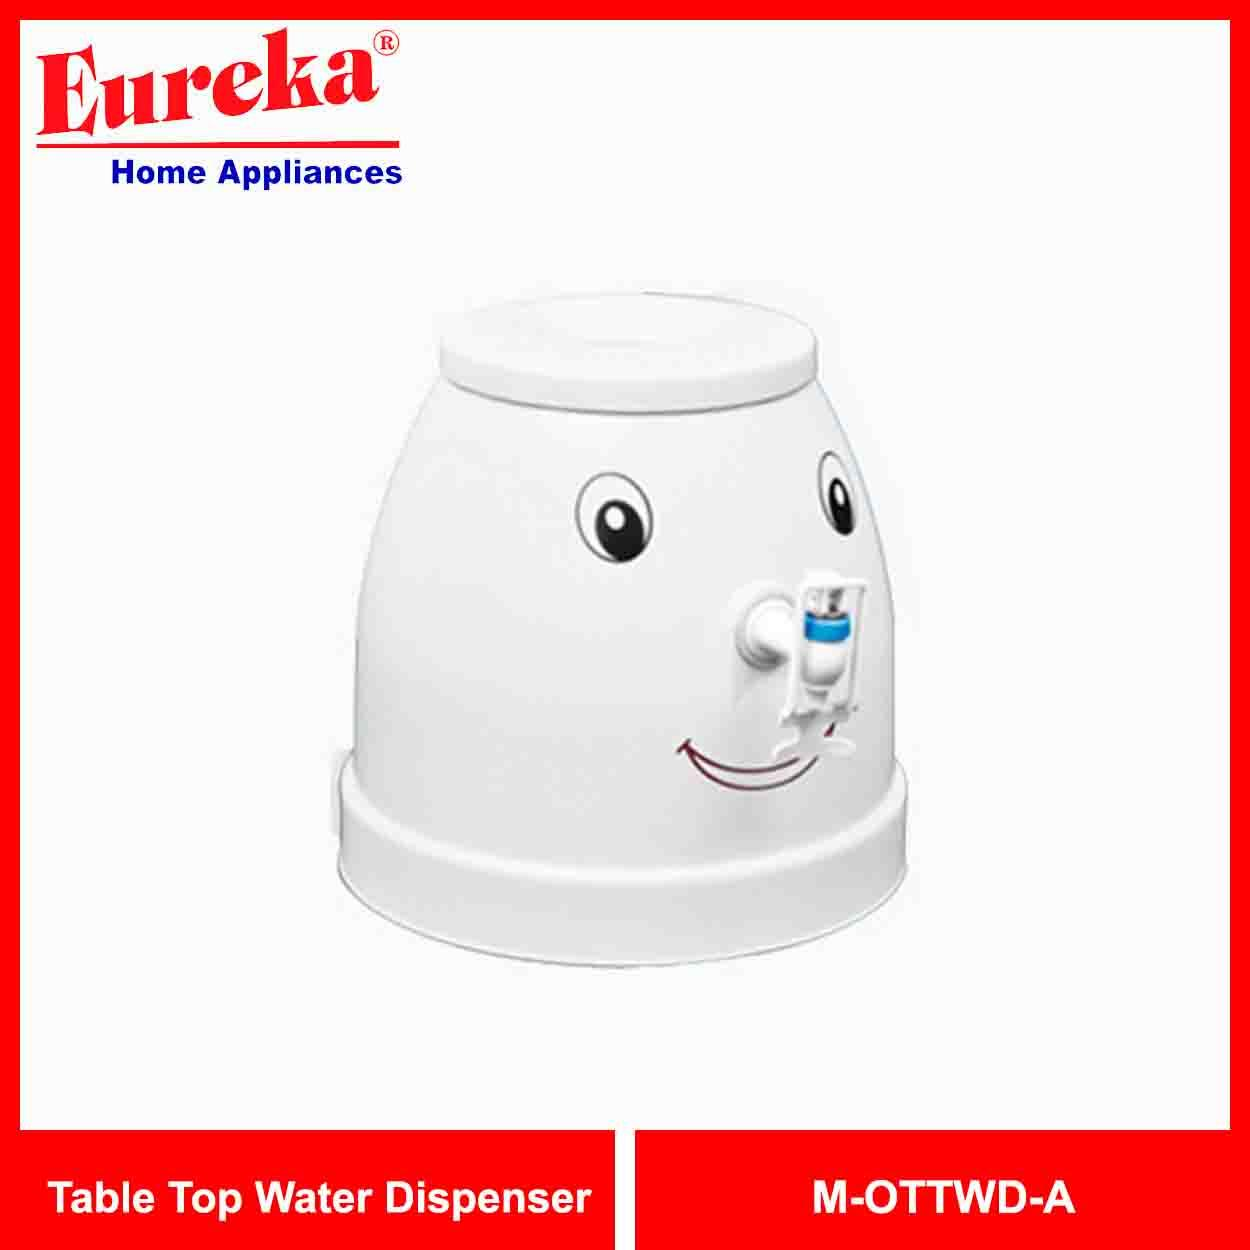 Eureka M-OTTWD-A Table Top Water Dispenser